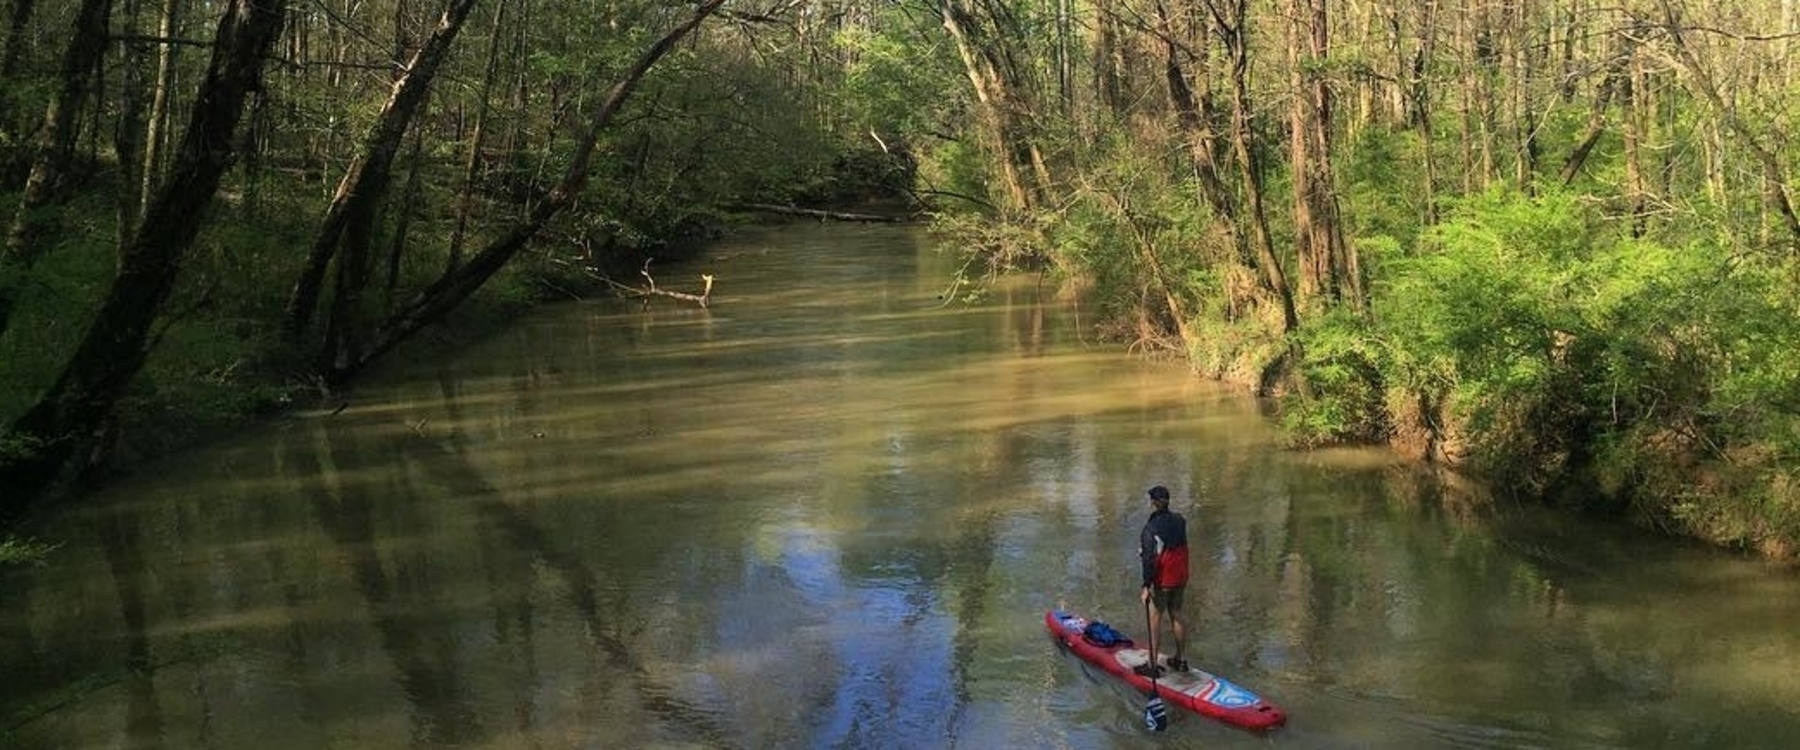 trip guide, stand up paddleboard, SUP